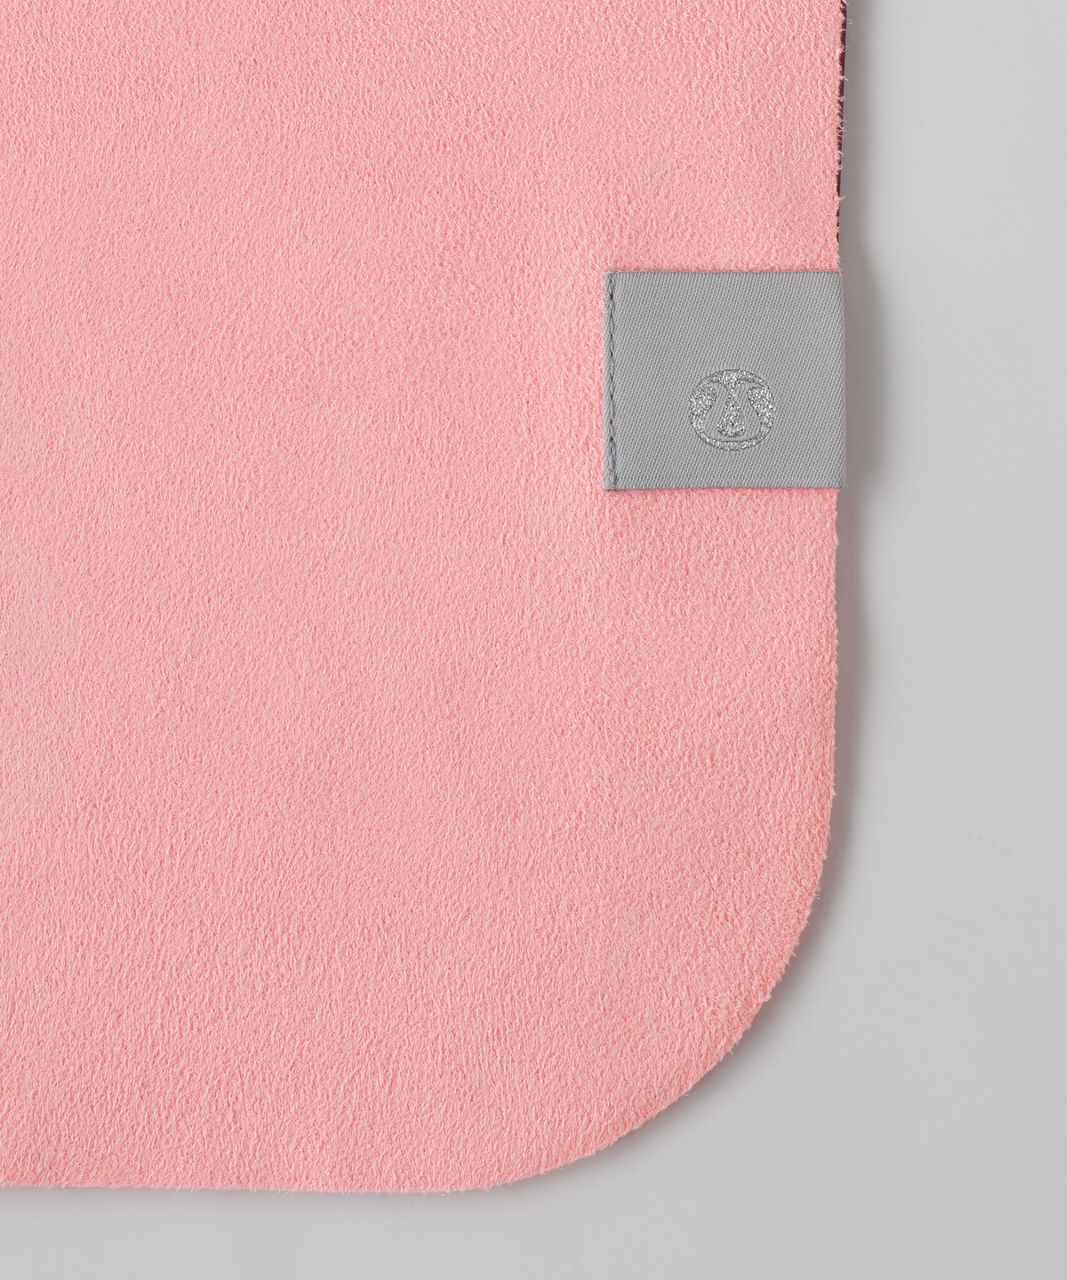 Lululemon The (Small) Towel - Bleached Coral